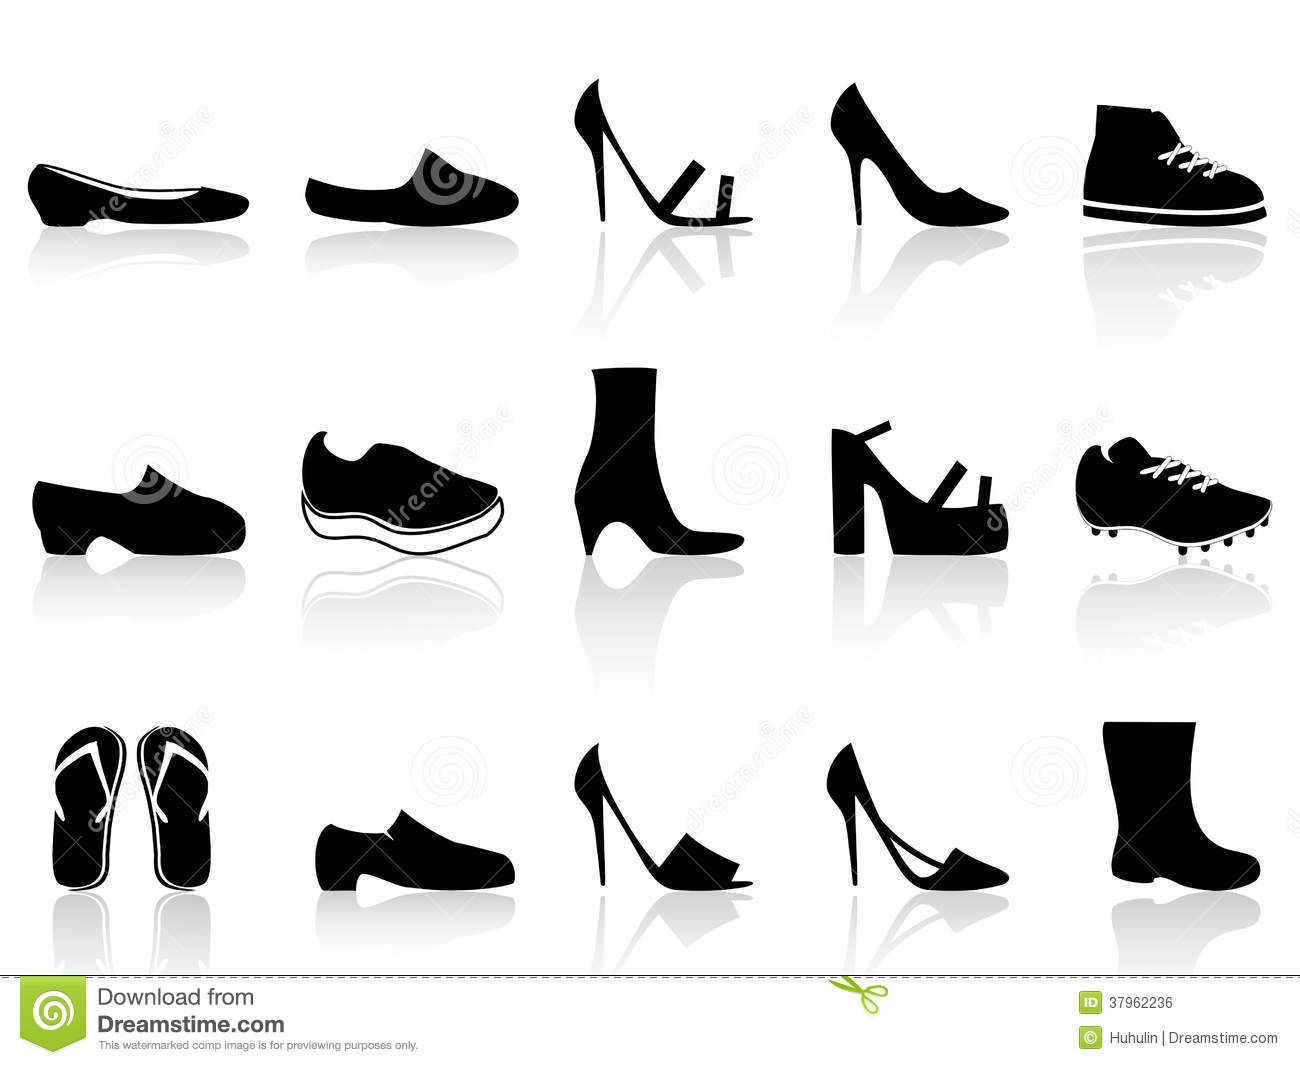 Isolated black shoes icons from white background cae22e557127